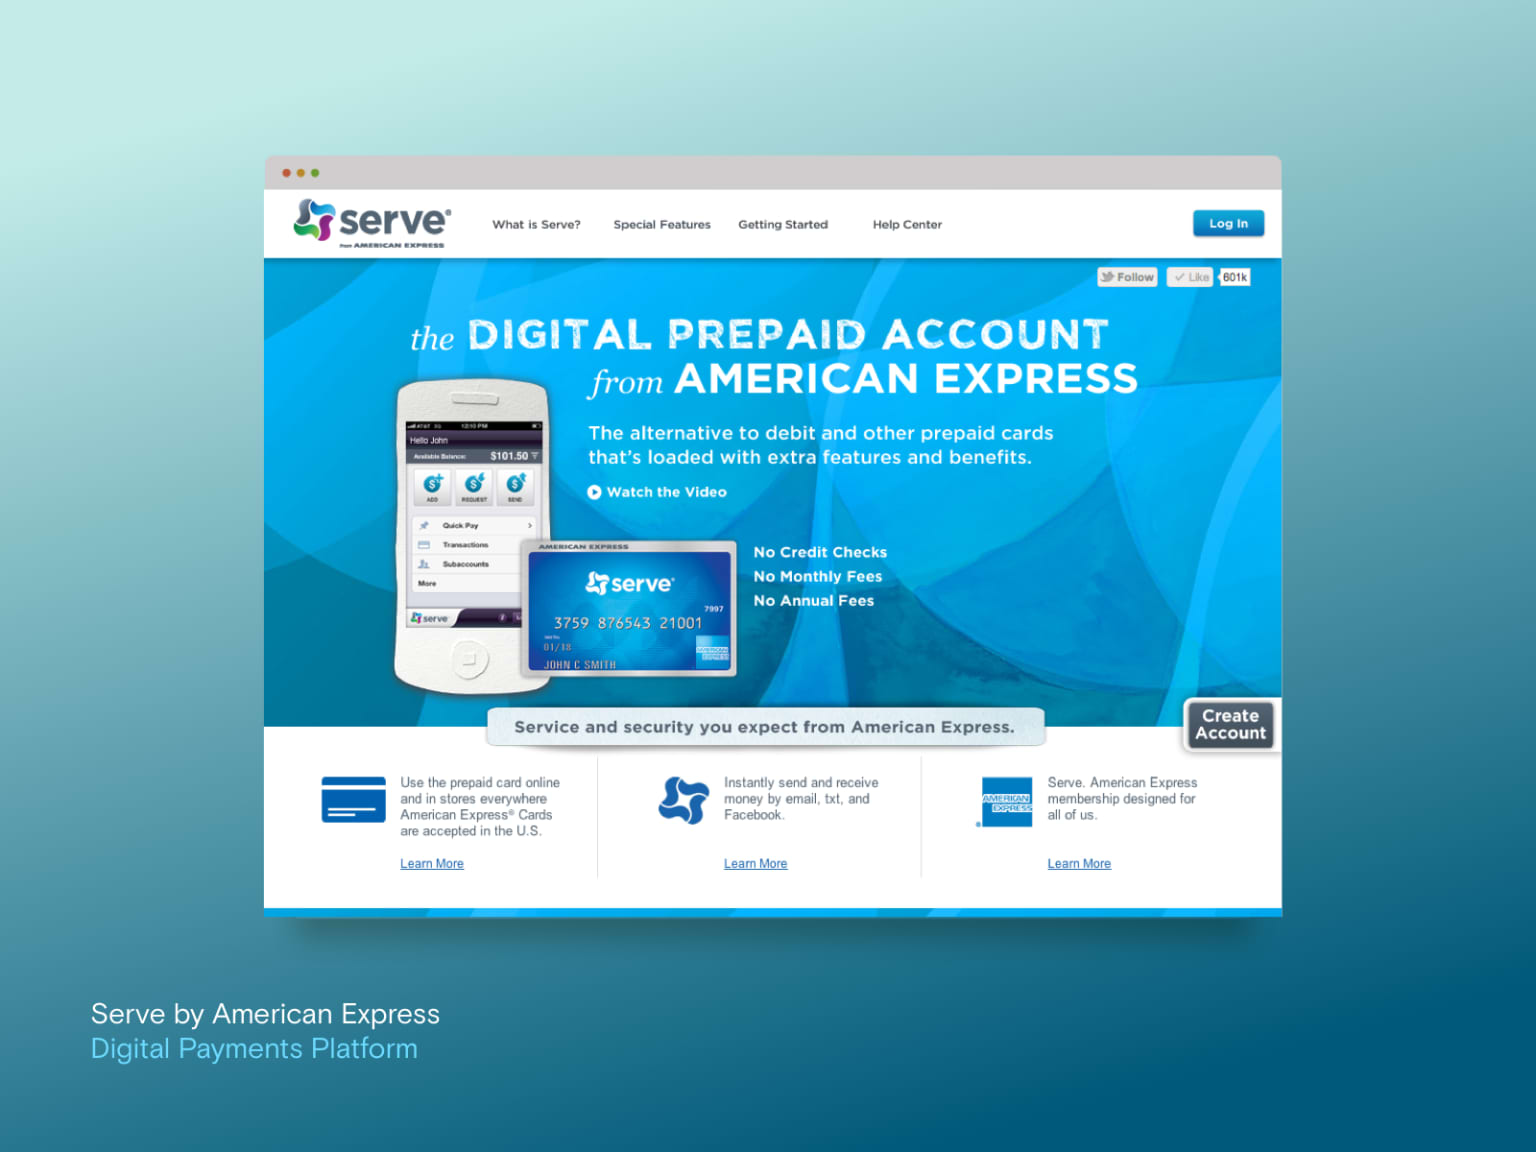 Serve by American Express